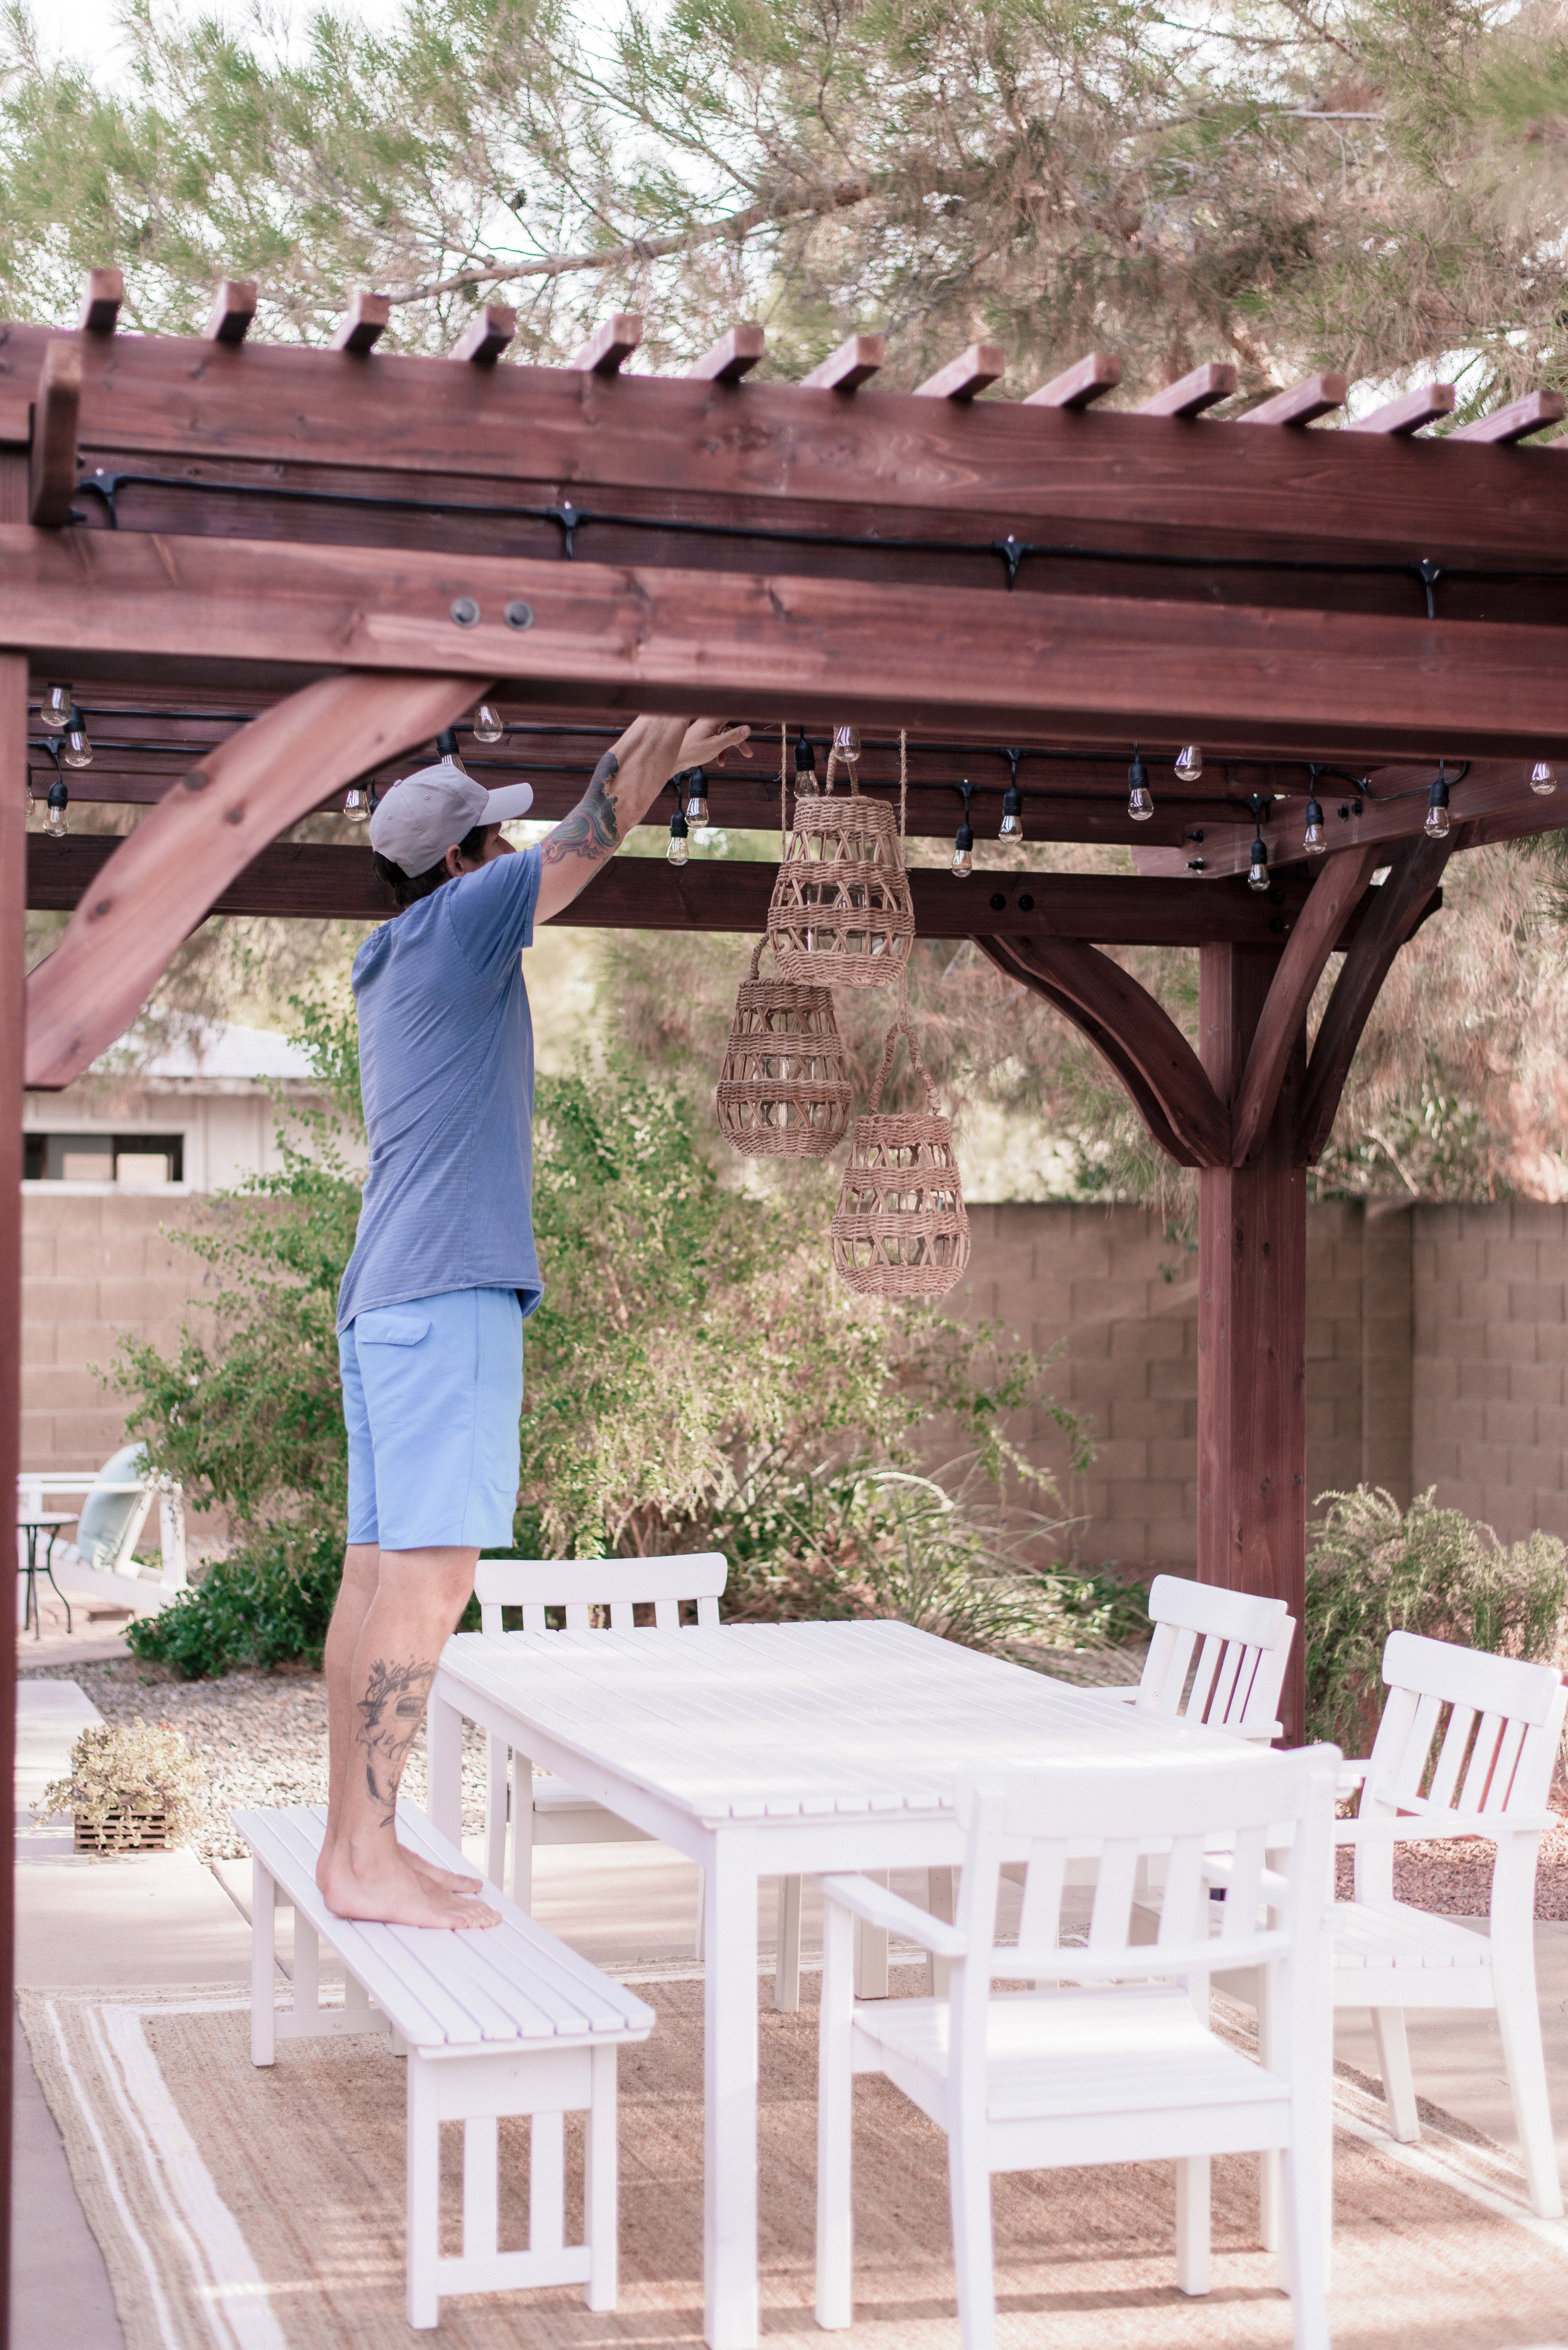 backyard patio pergola project with Home Depot and Leisure Time Product featured by top US lifestyle blog, Love + Specs: image of outdoor string lights under a wood backyard patio pergola